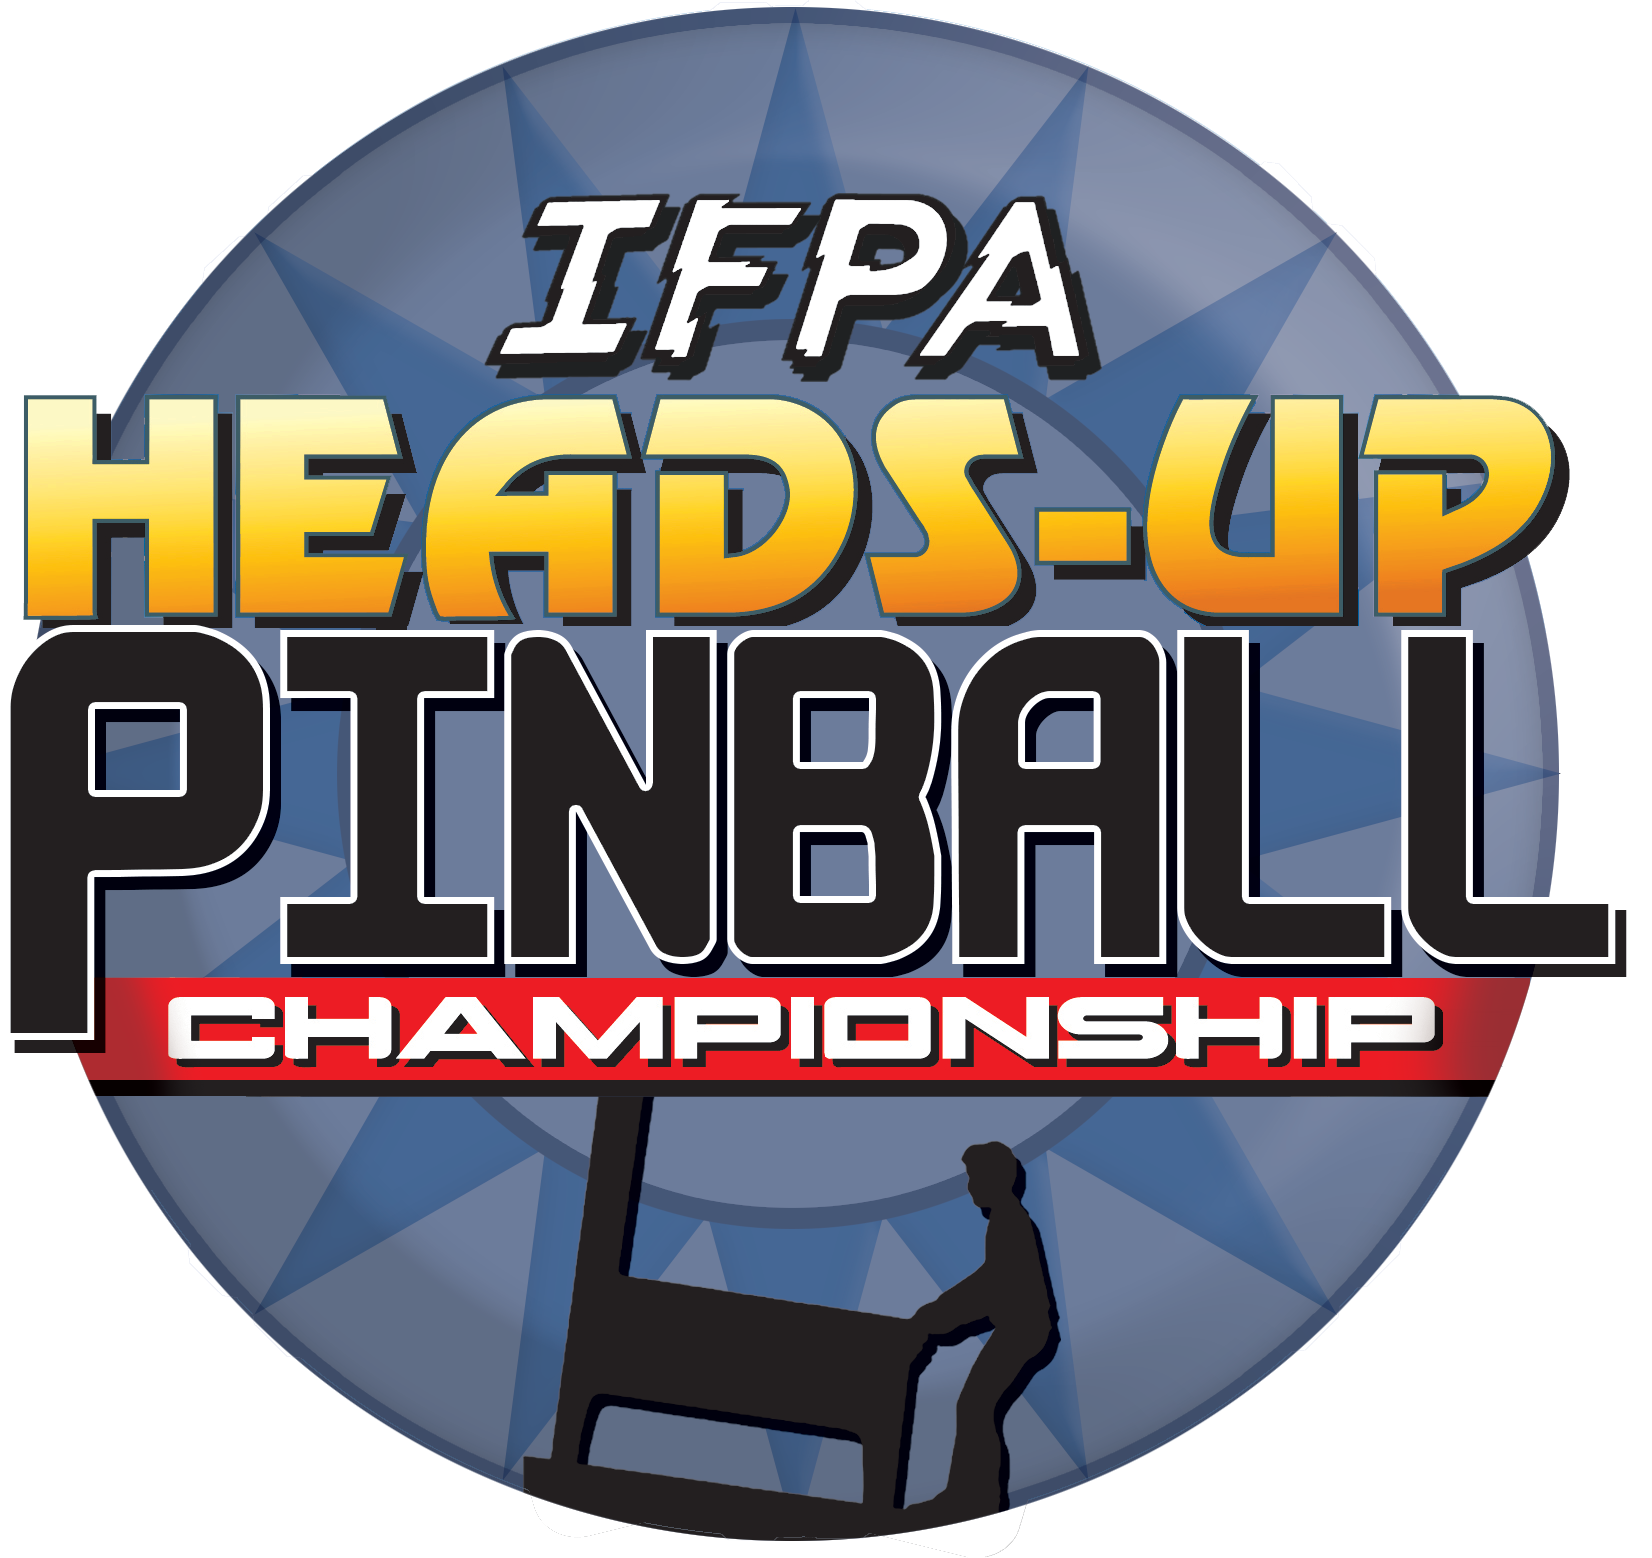 Pokeball clipart simple. Tournament info the ifpa